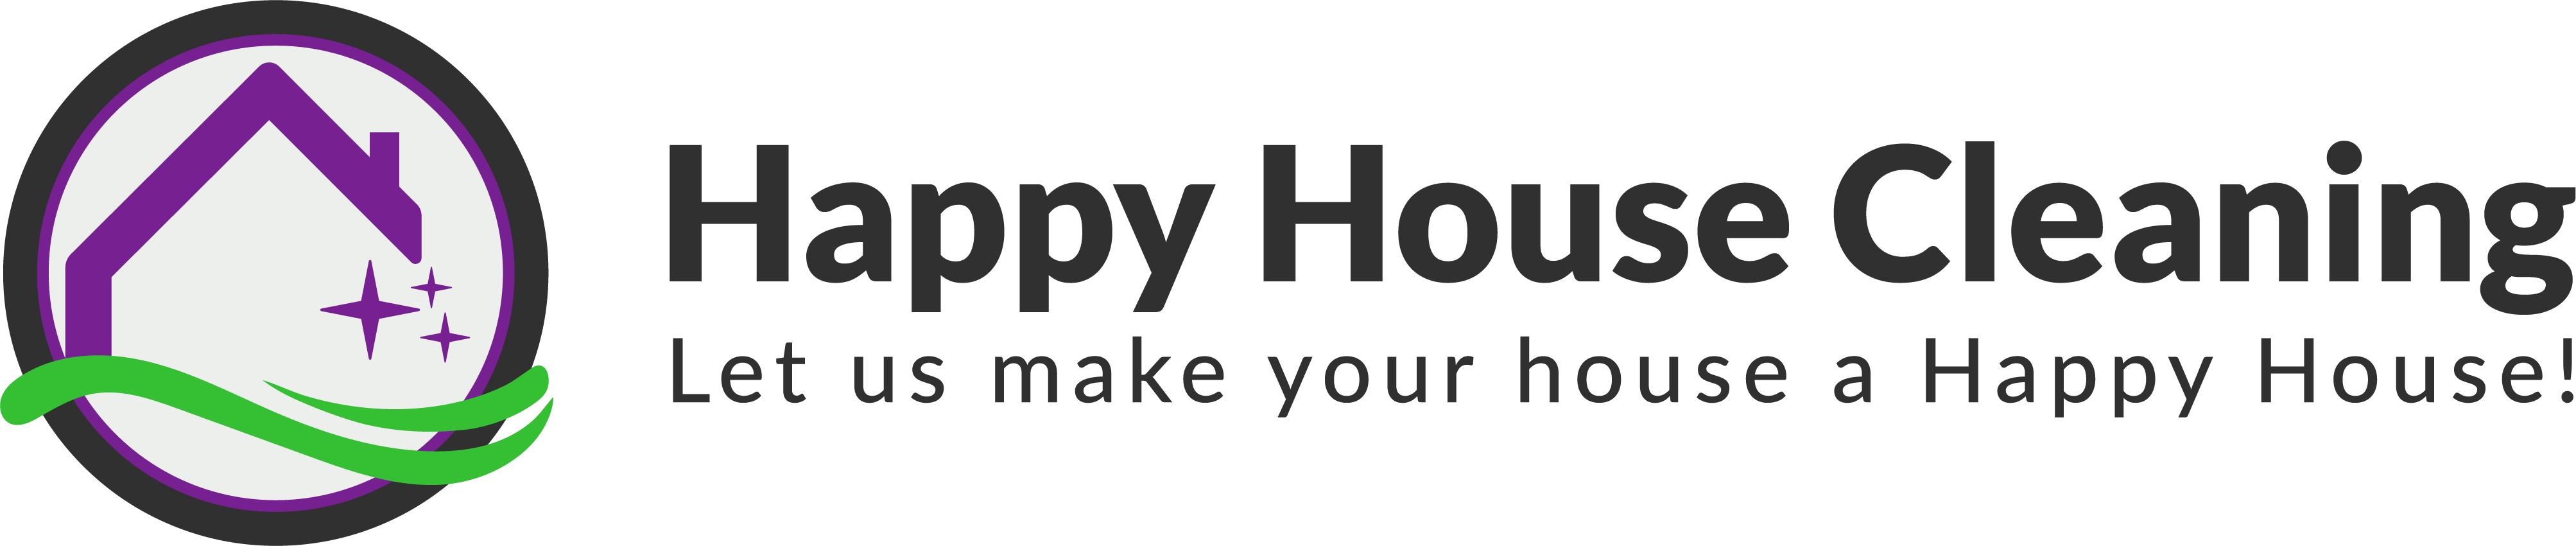 Happy House Cleaning